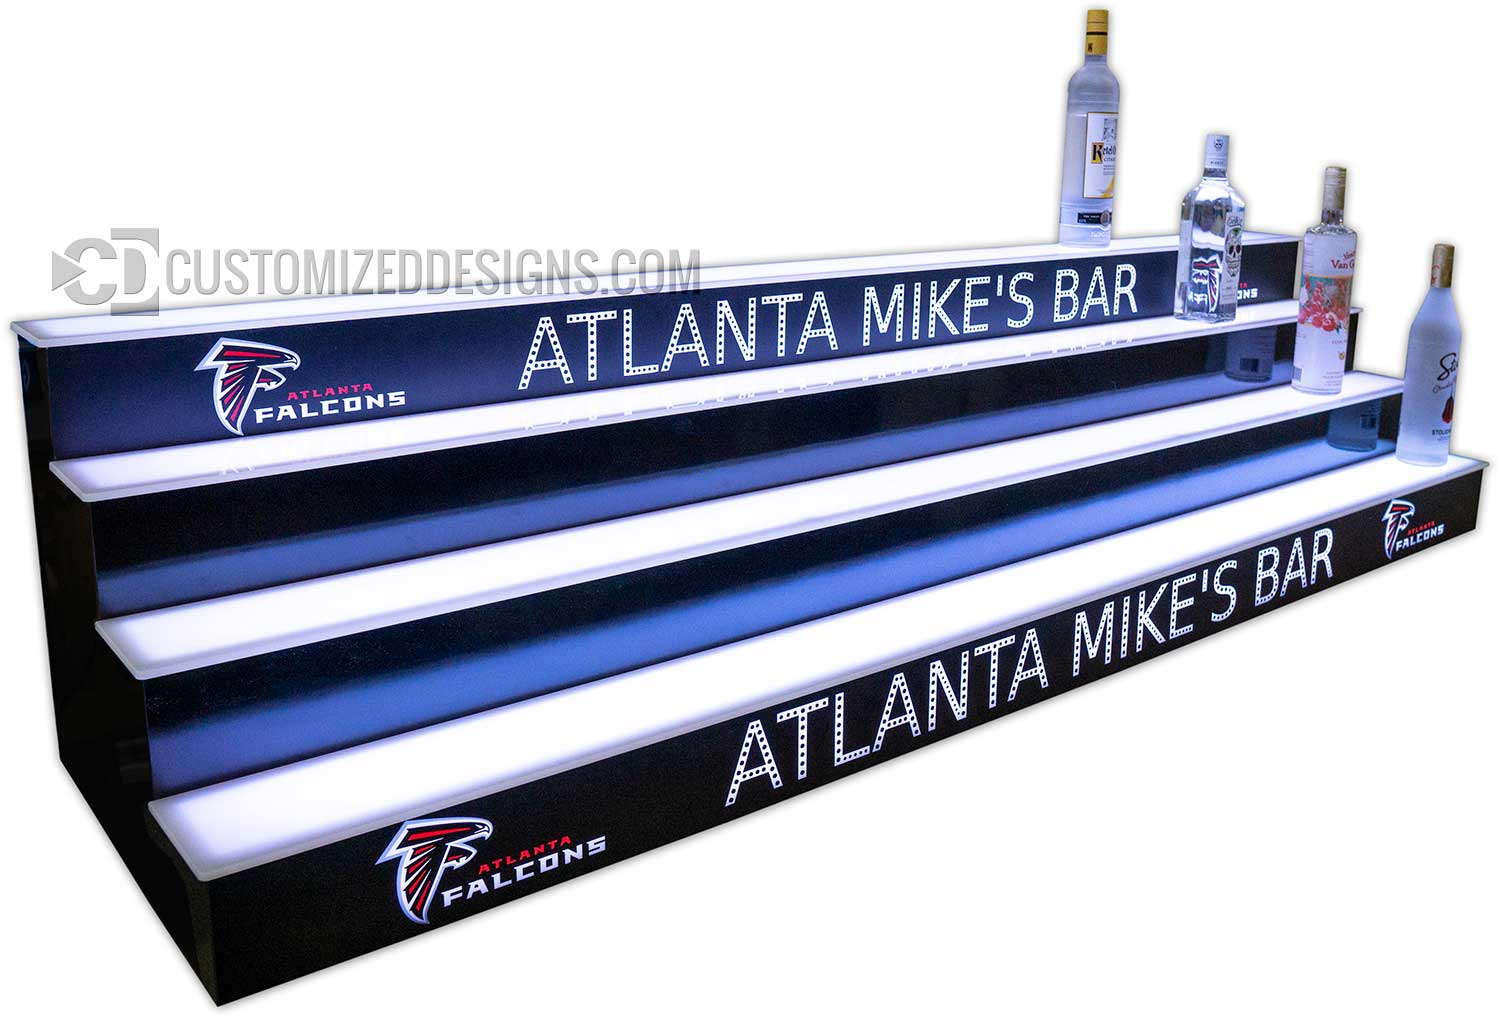 Atlanta Falcons 4 Tier Liquor Bottle Shelving